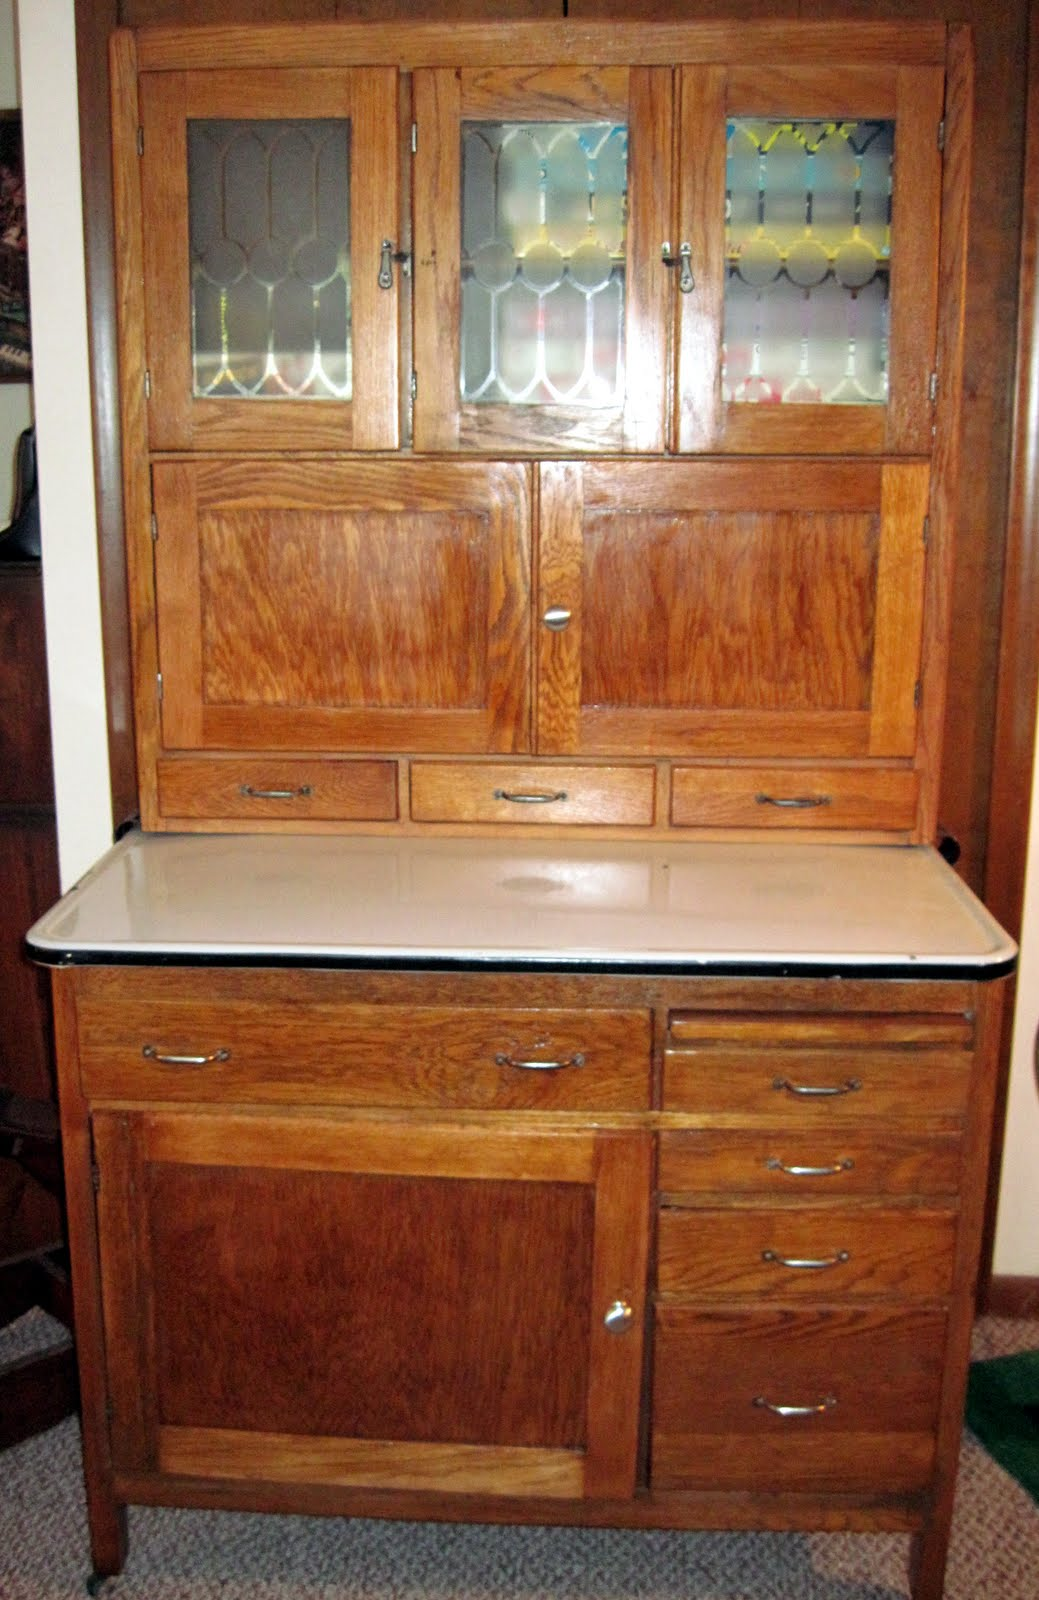 Tracy's Toys (and Some Other Stuff): 1916 Hoosier Cabinet